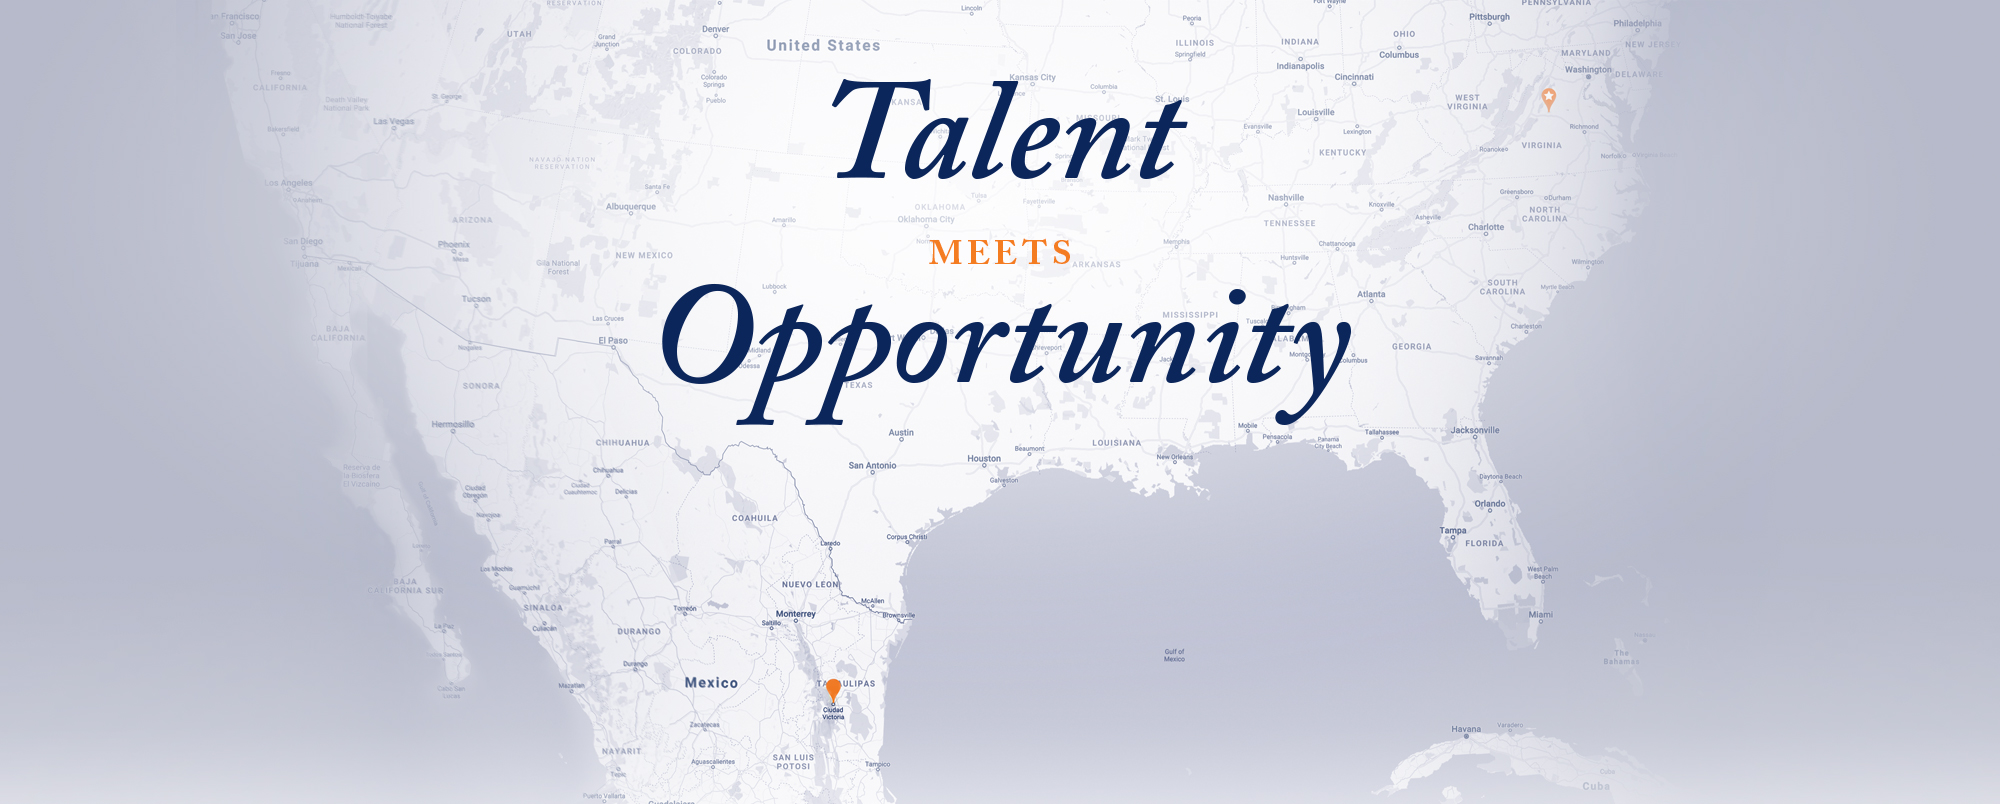 Talent Meets Opportunity